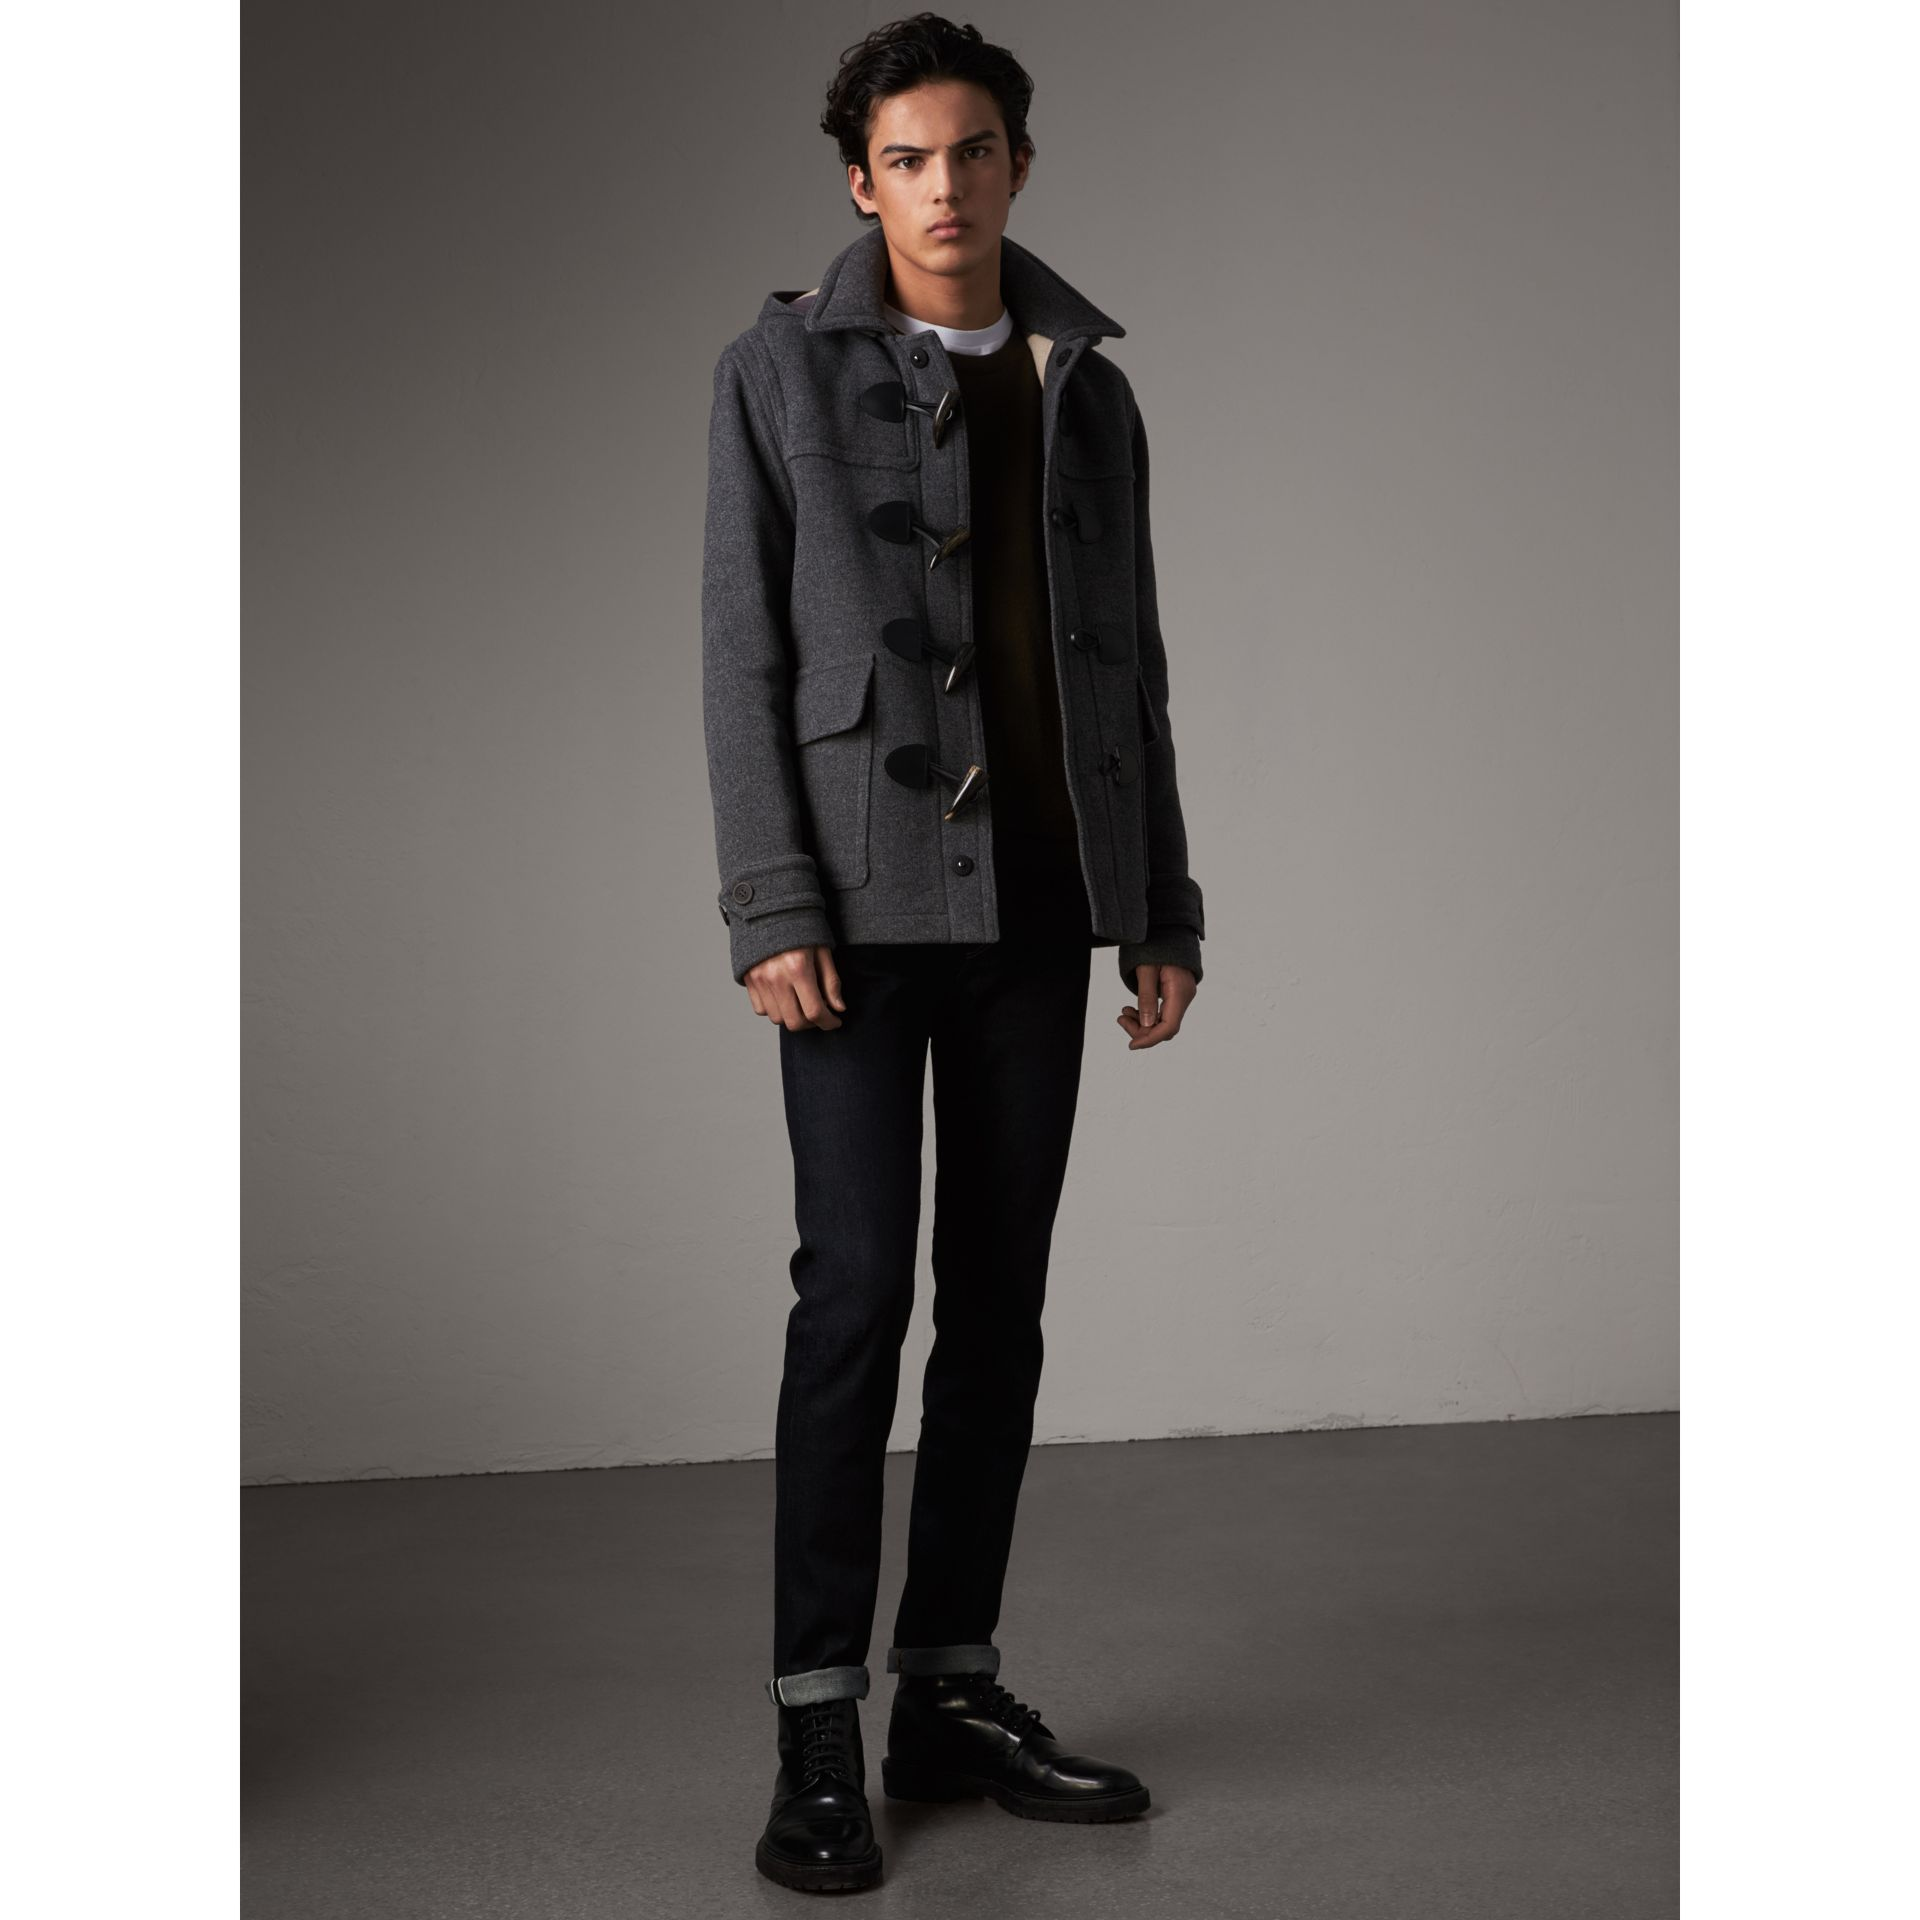 Jean slim en denim selvedge japonais extensible (Indigo Sombre) - Homme | Burberry - photo de la galerie 6